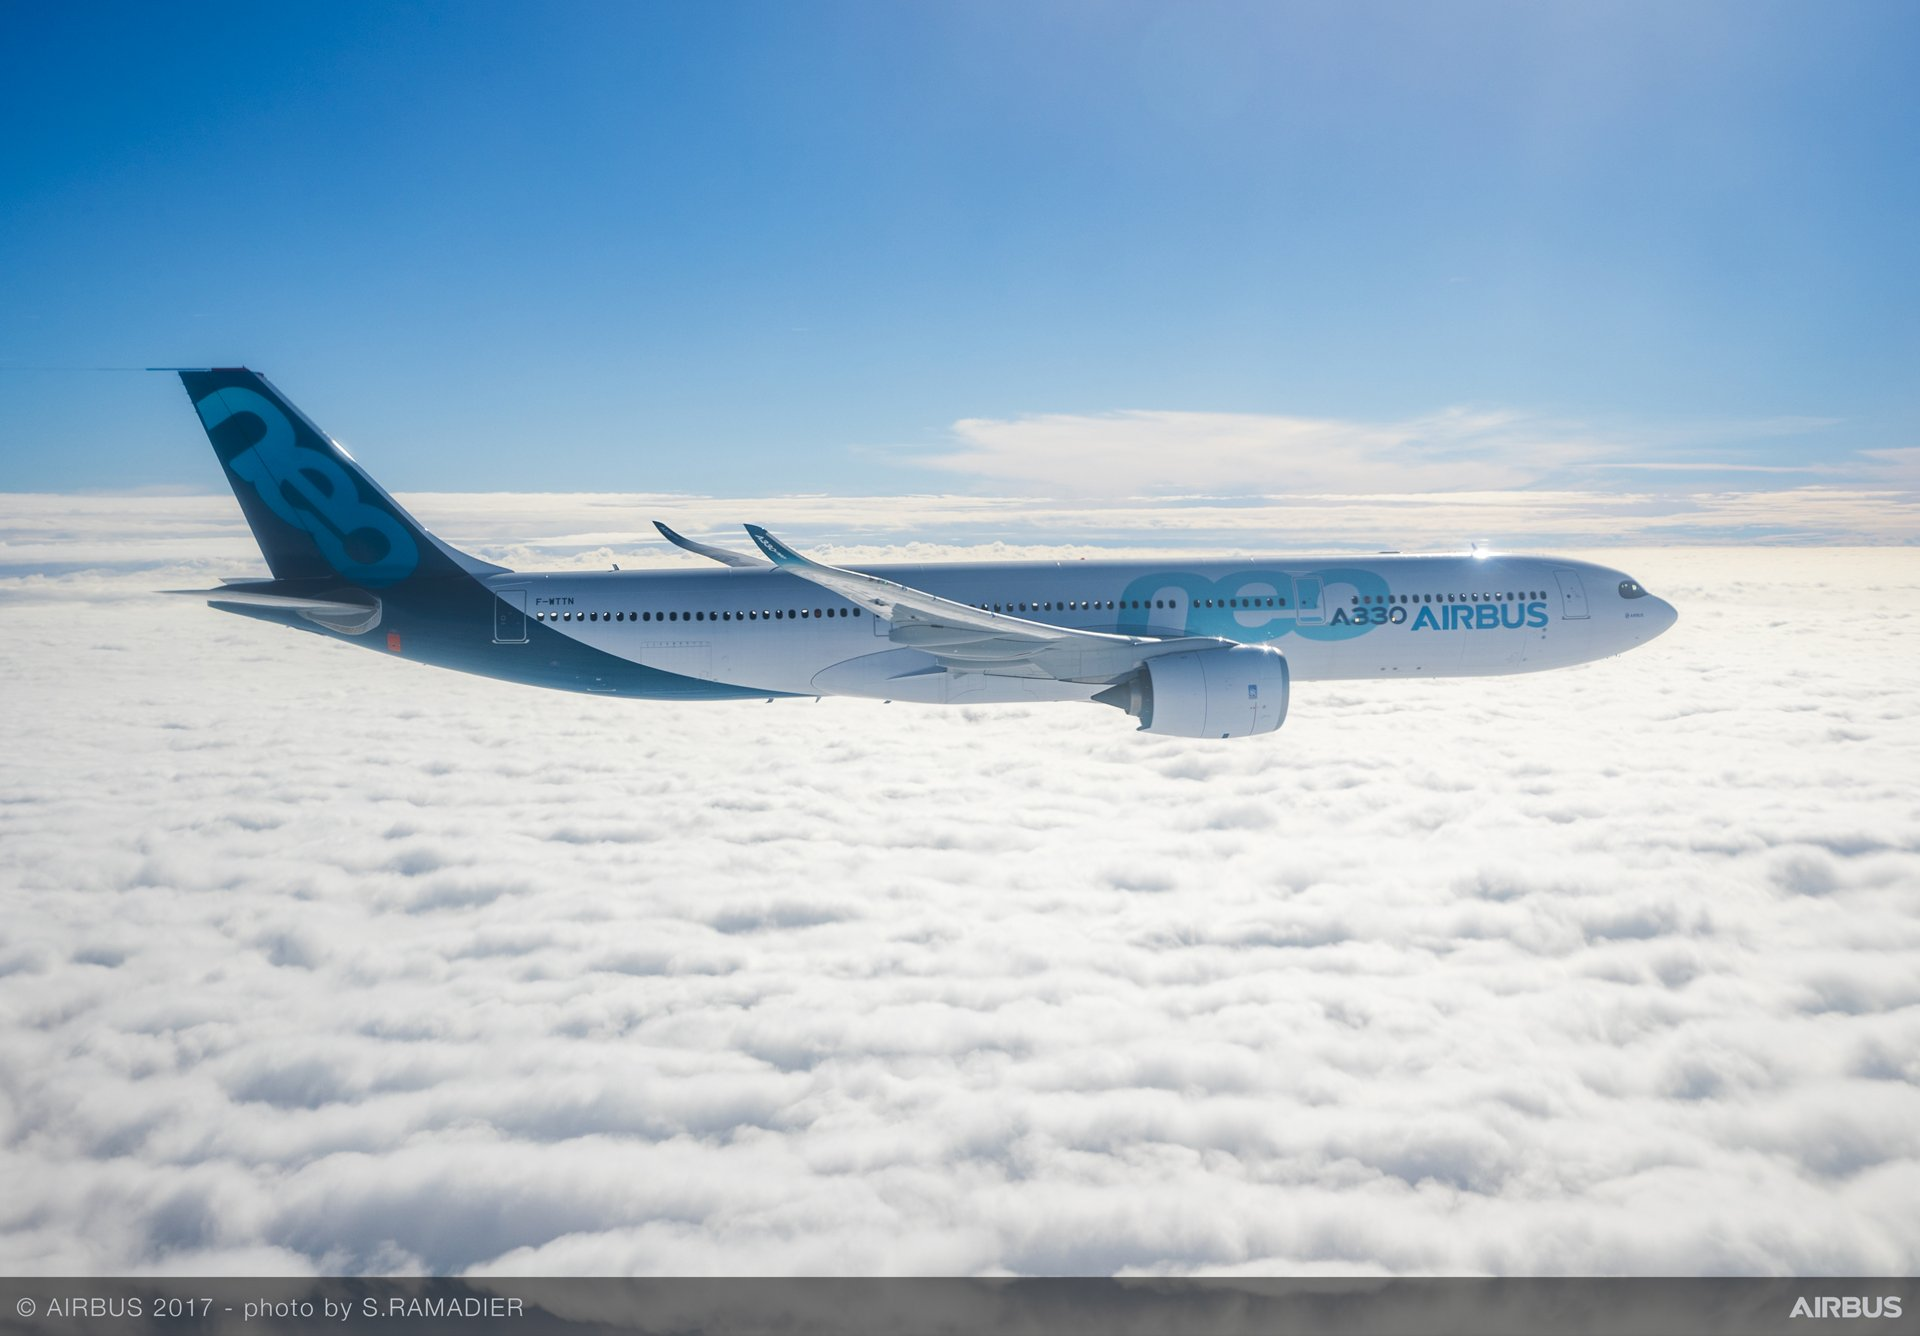 Side view of an Airbus A321neo commercial aircraft in flight.